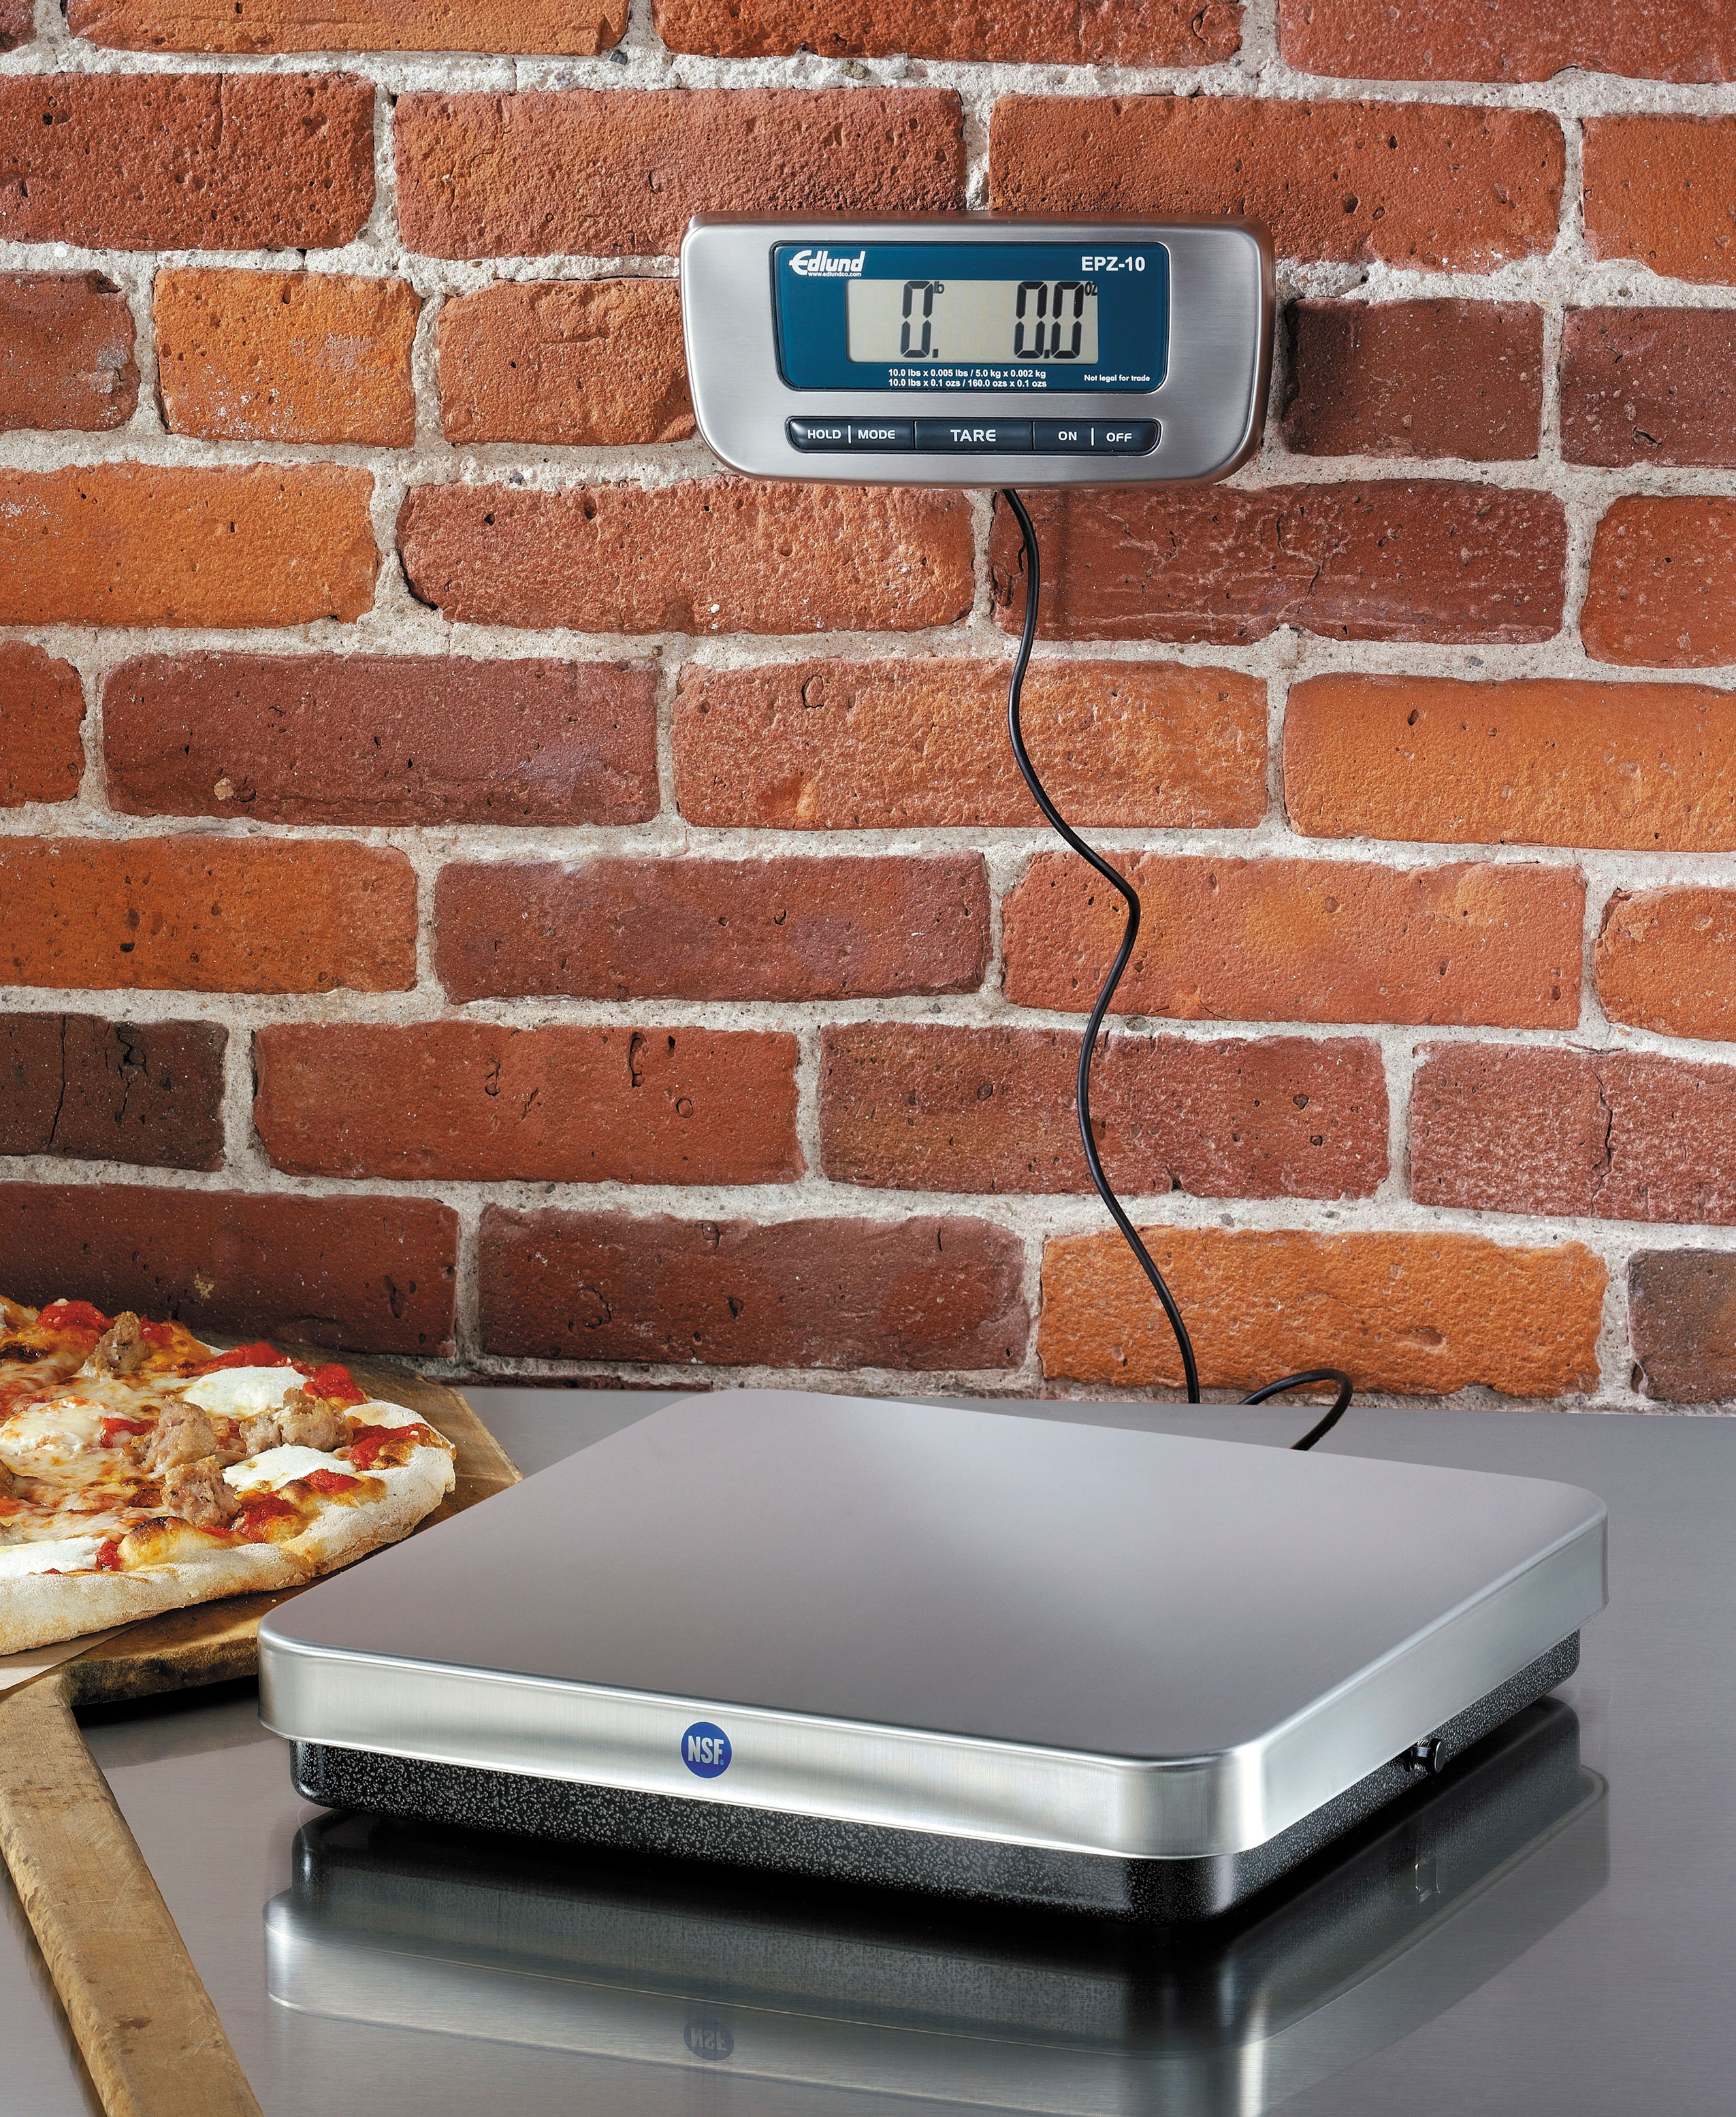 nsf certified digital pizza scales